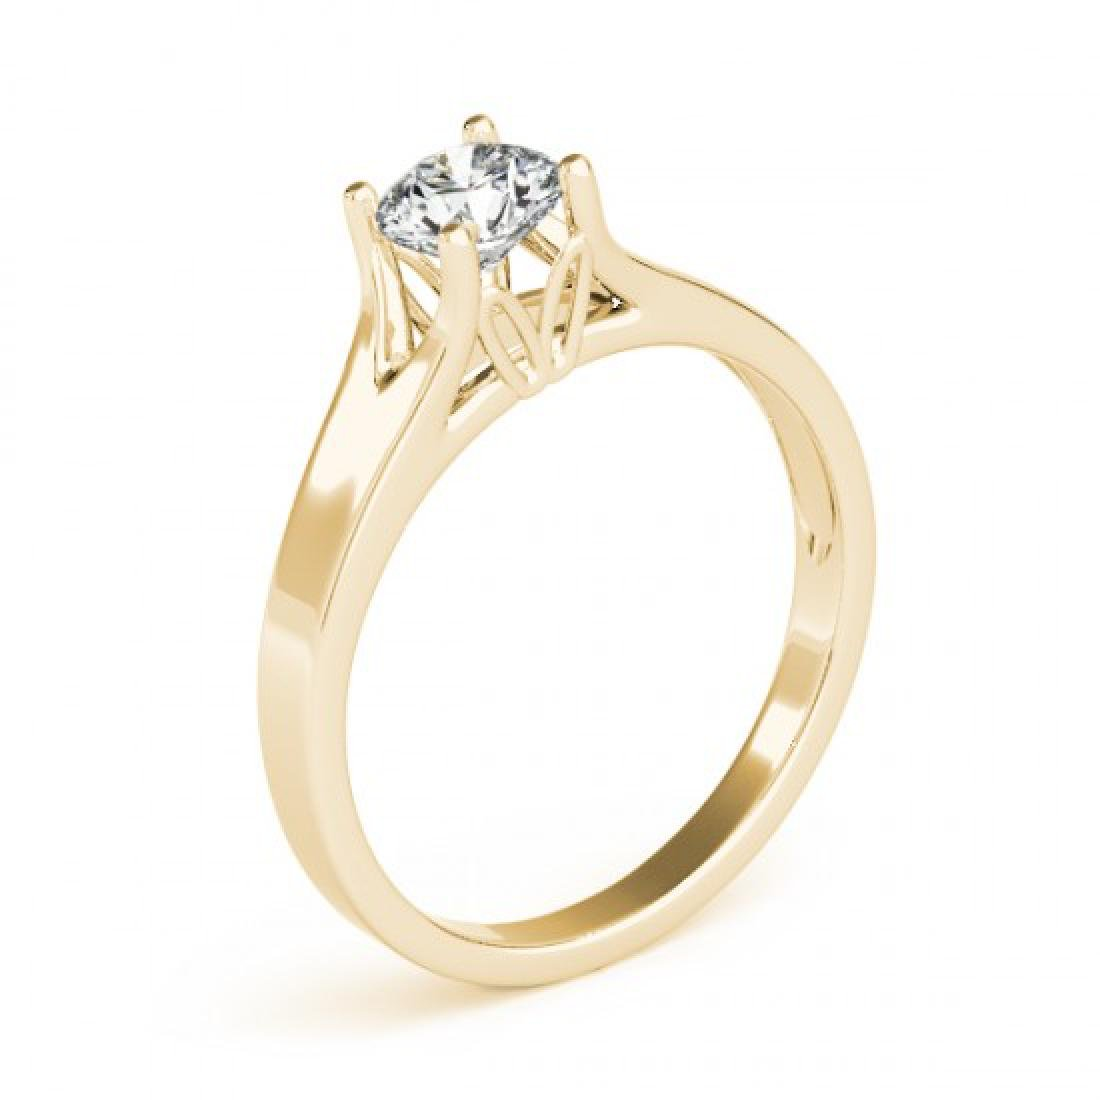 1 CTW Certified VS/SI Diamond Solitaire Ring 14K Yellow - 3